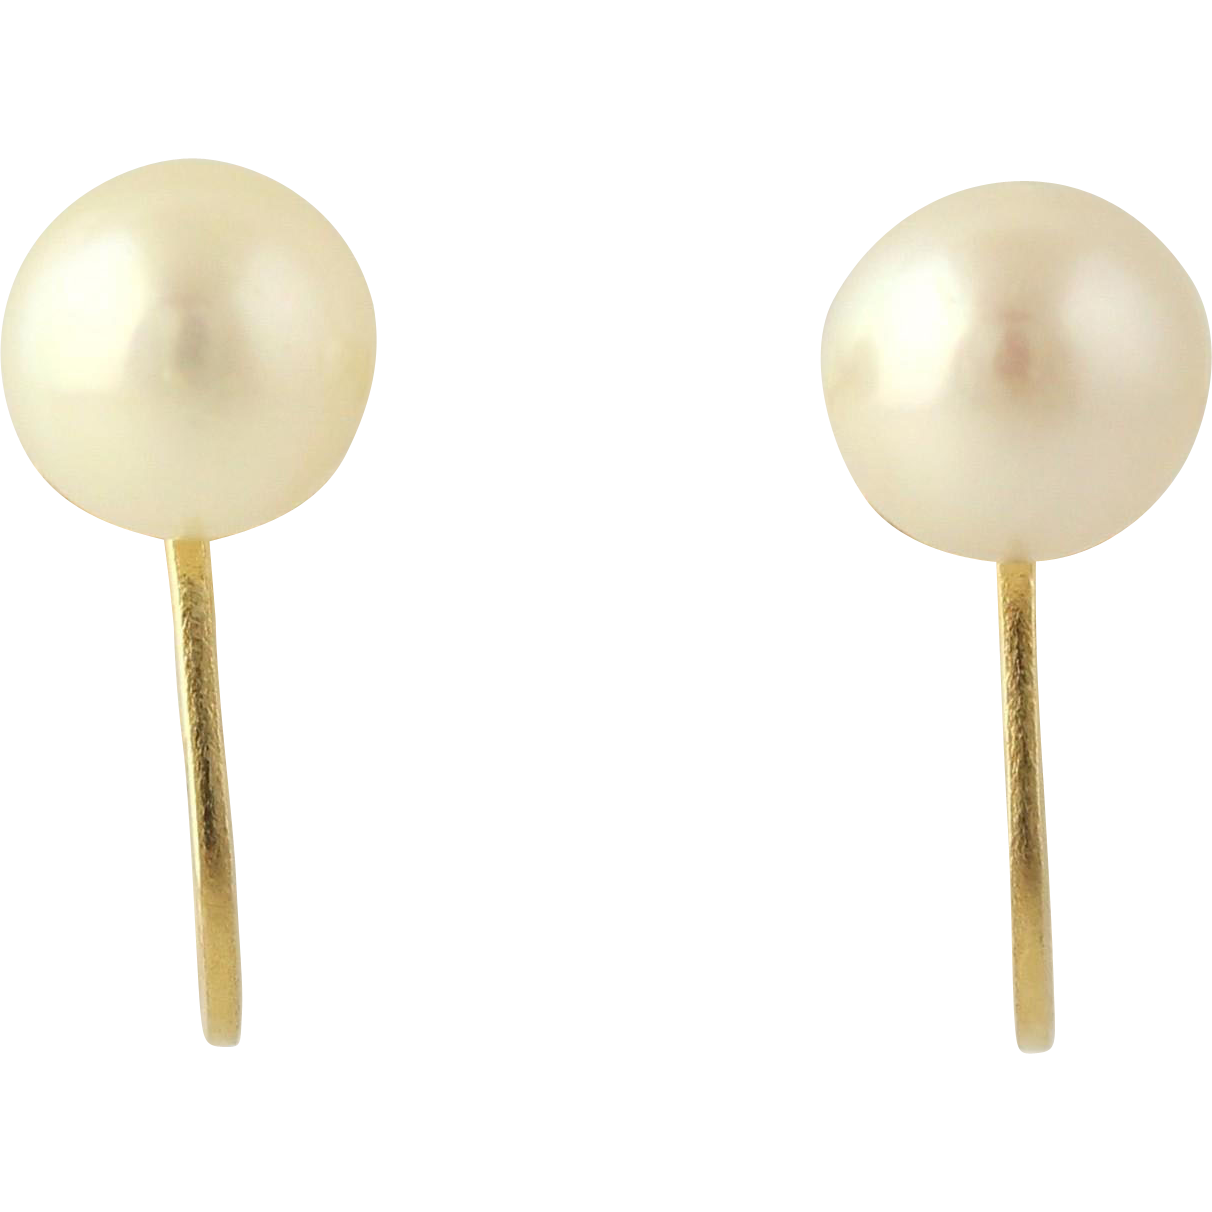 Akoya Pearl Earrings - 14k Yellow Gold 6.3mm Non-Pierced Screw Back Solitaire